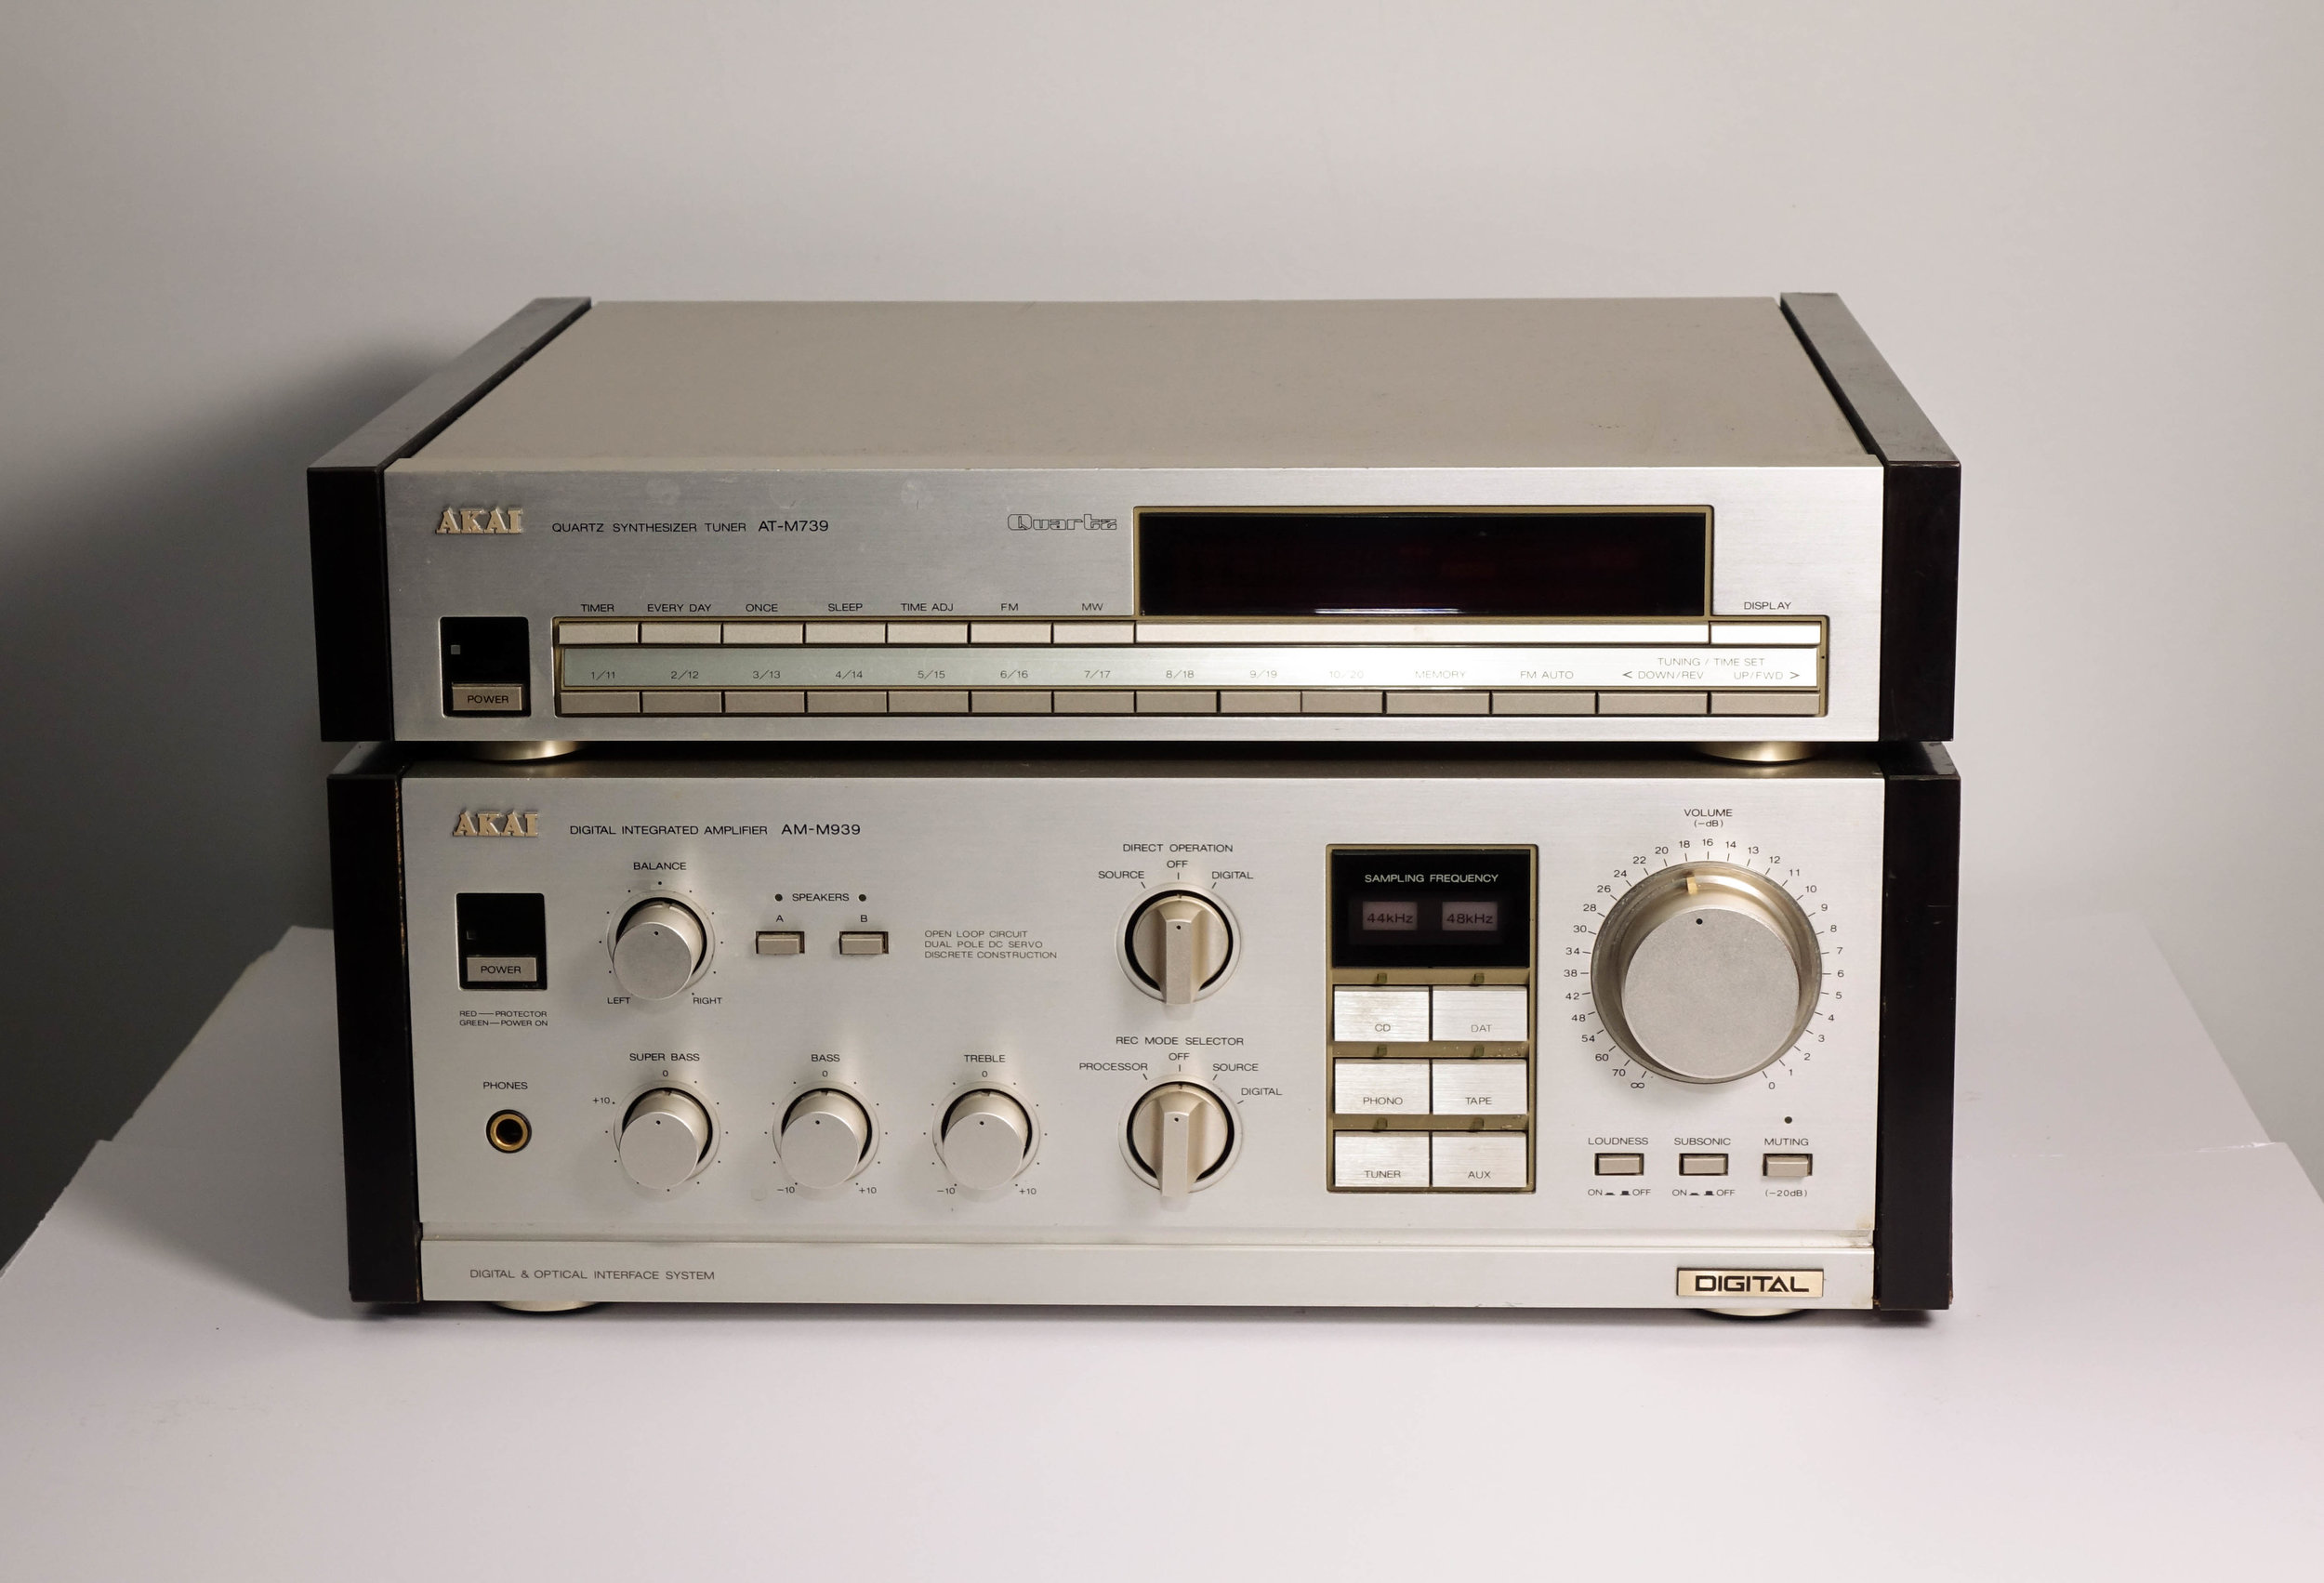 Akai AM M939 + AT M739   Specifications   Power output: 80 watts per channel into 6Ω (stereo)  Frequency response: 5Hz to 100kHz  Total harmonic distortion: 0.008%  Damping factor: 30  Input sensitivity: 2.5mV (MM), 150mV (line)  Signal to noise ratio: 85dB (MM), 100dB (line)  Output: 150mV (line)  Speaker load impedance: 6Ω to 16Ω  Digital inputs: coaxial, optical  Dimensions: 385 x 139 x 330mm  Weight: 10.3kg   $375